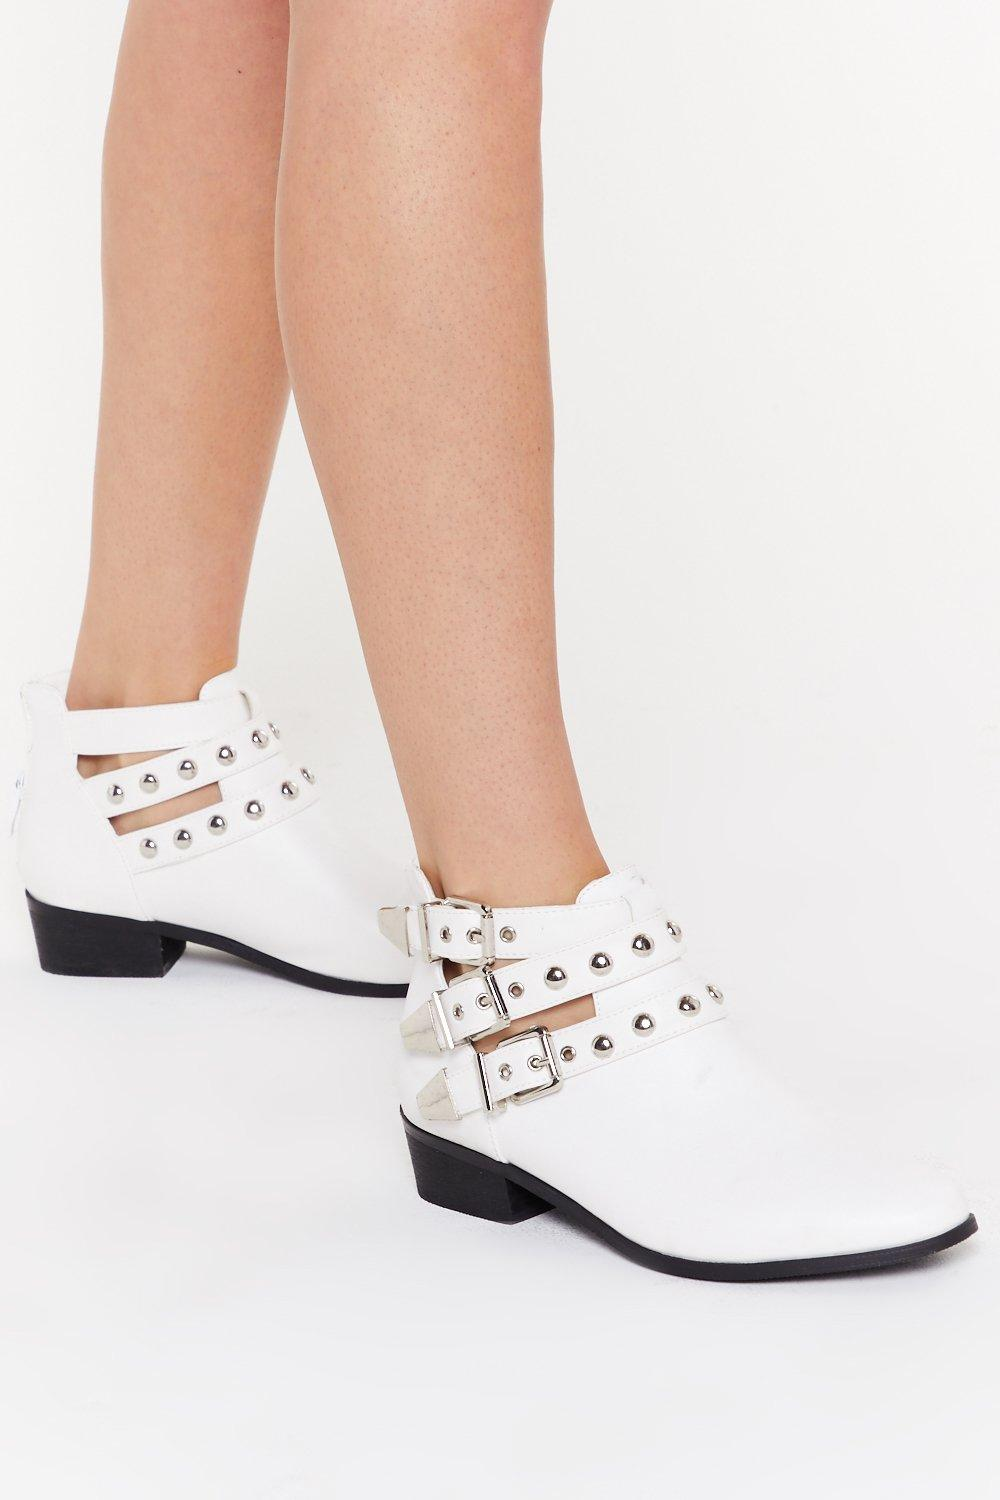 Dome Stud Cut Out Ankle Boot by Nasty Gal